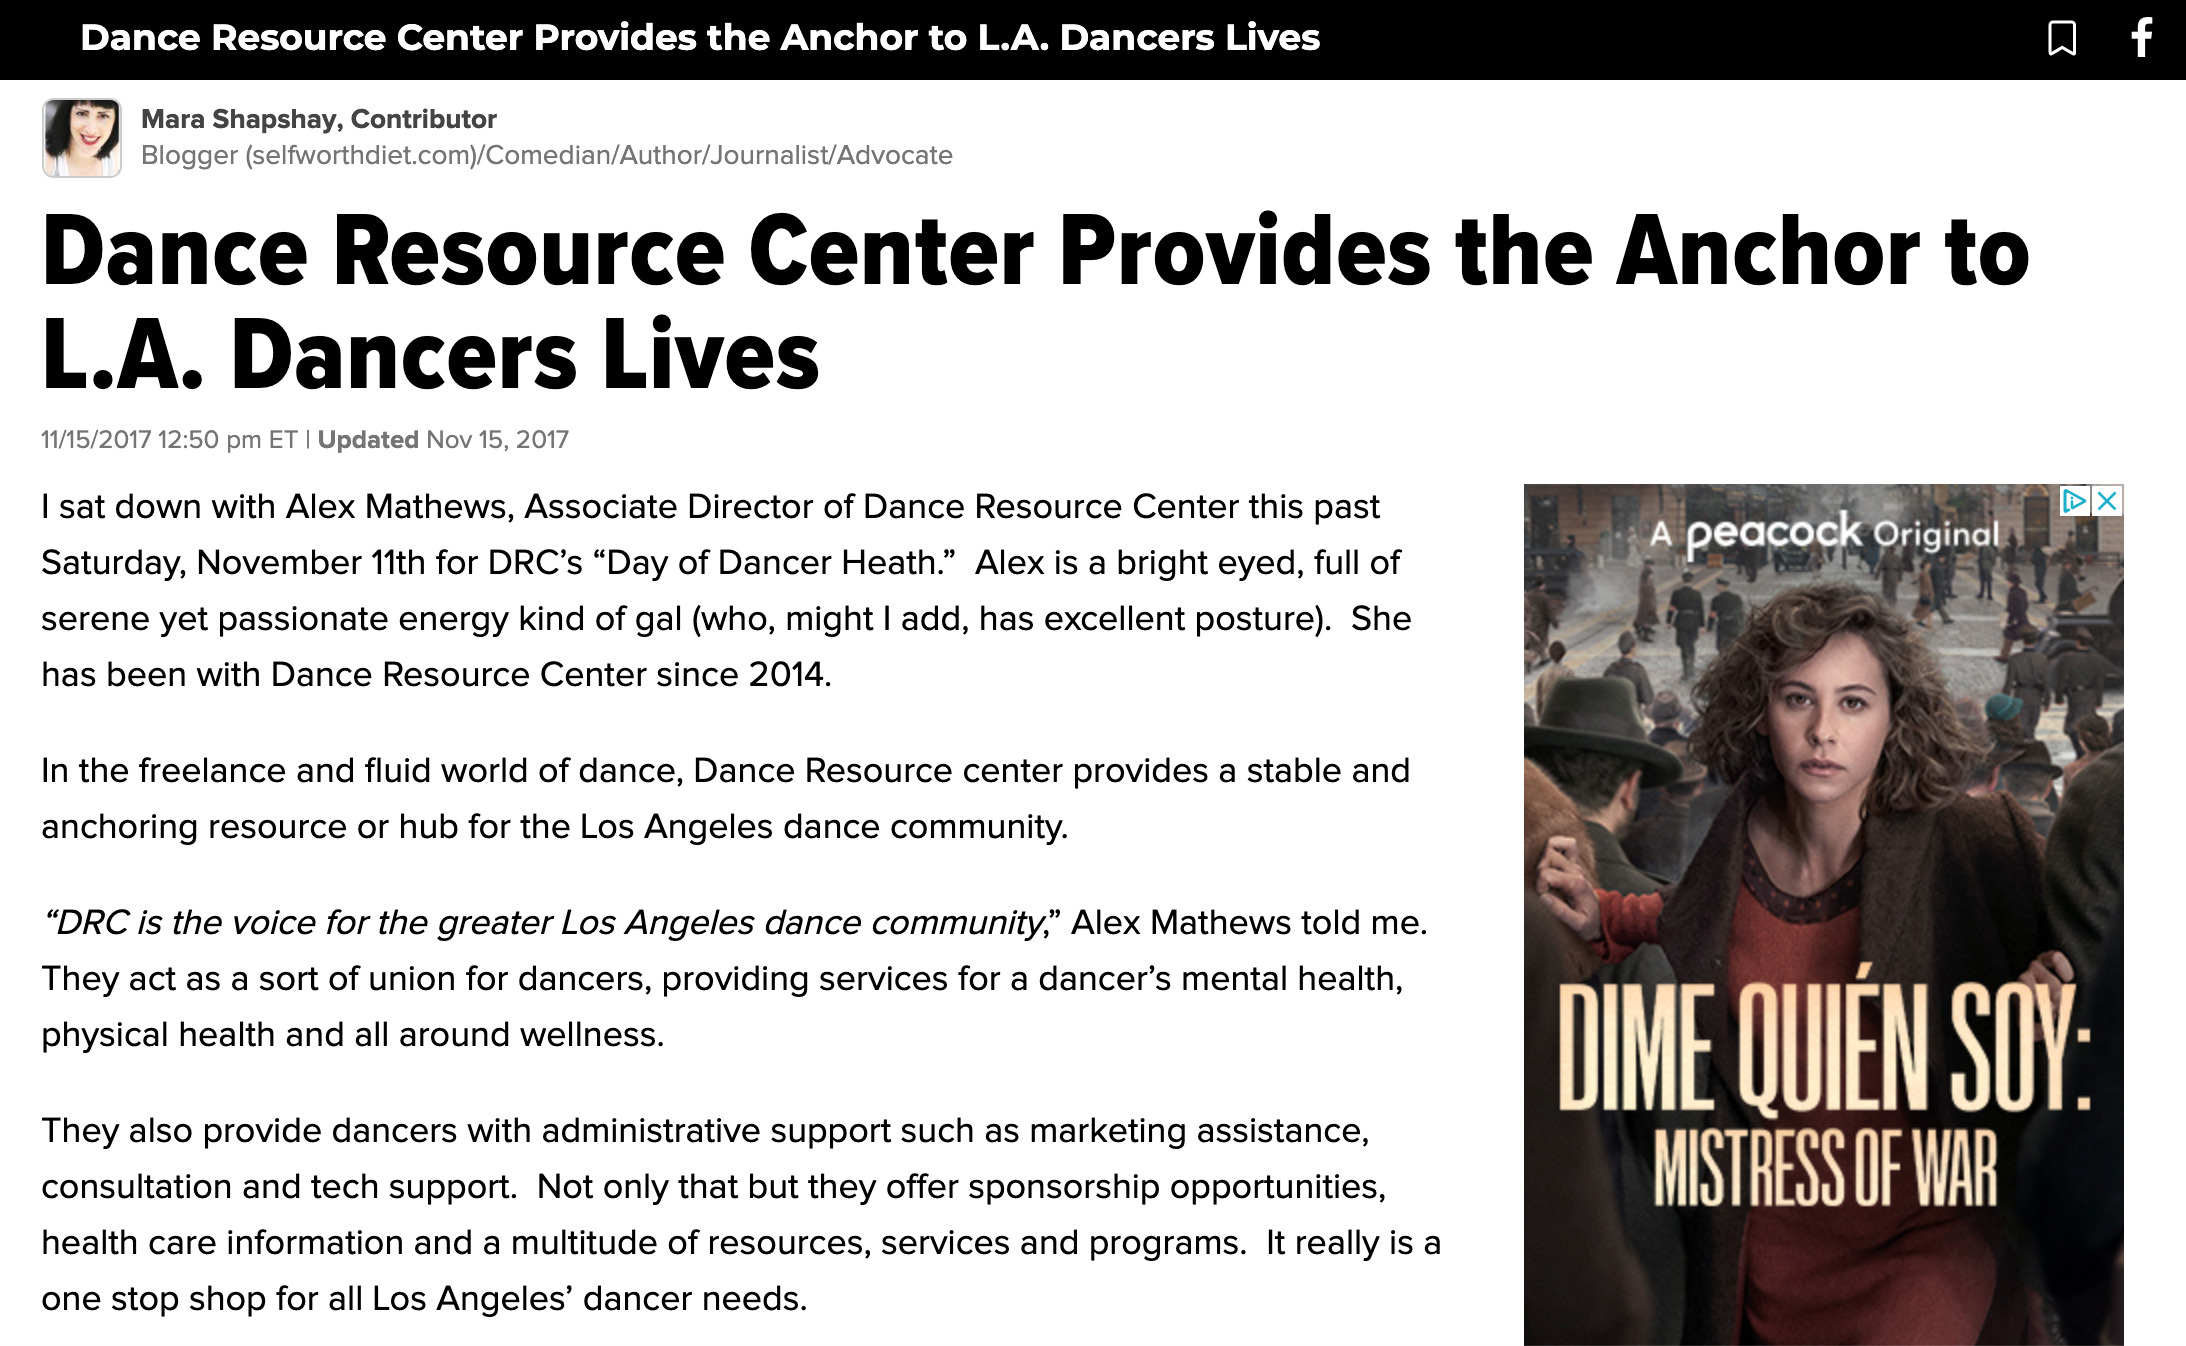 Dance Resource Center provides the anchor to L.A. Dancers lives Huffpost article.